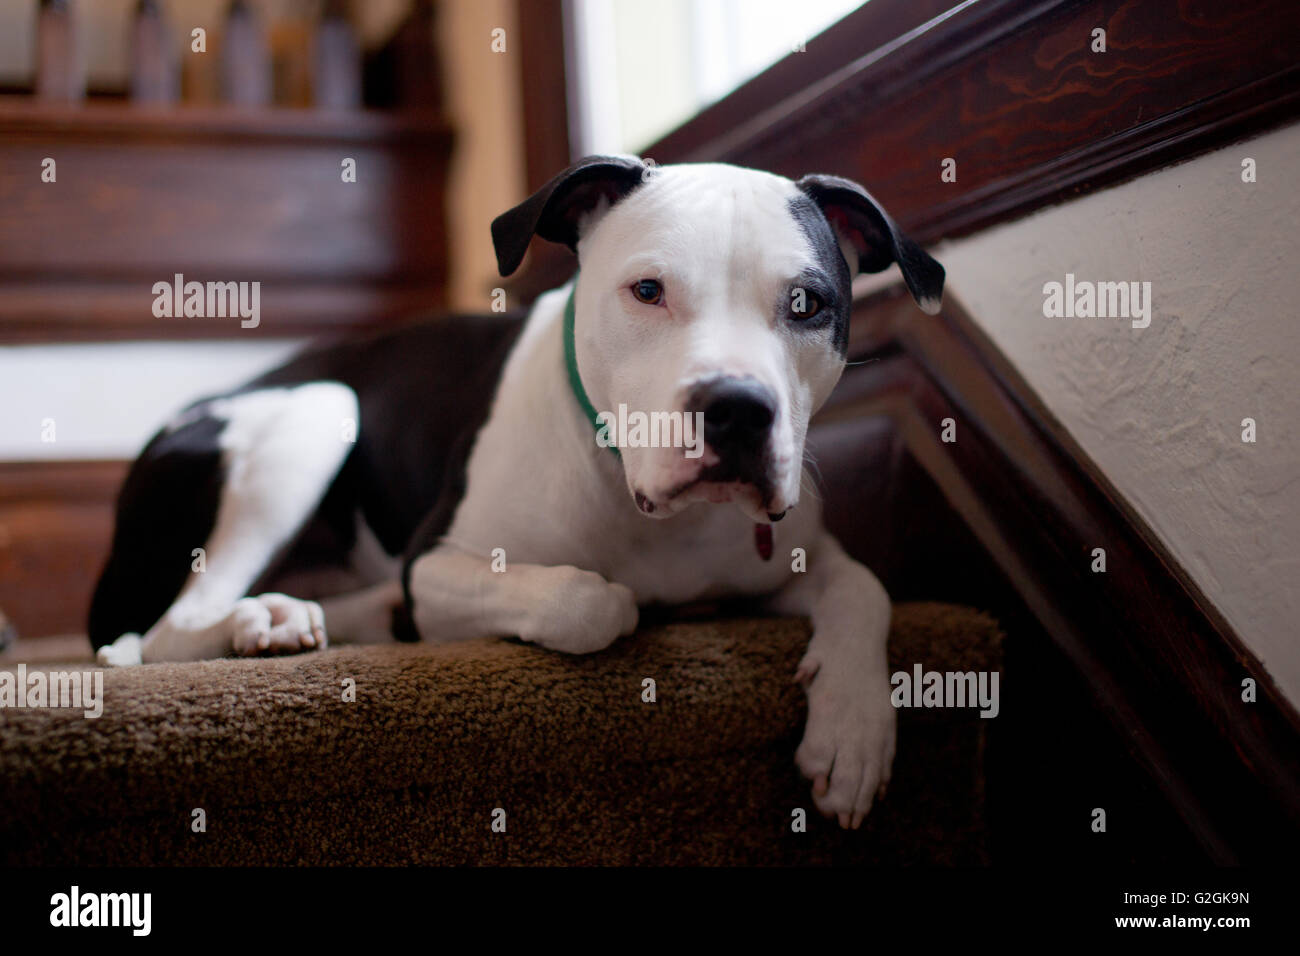 Pit Bull Dog Relaxing on Stairs, Close-Up - Stock Image